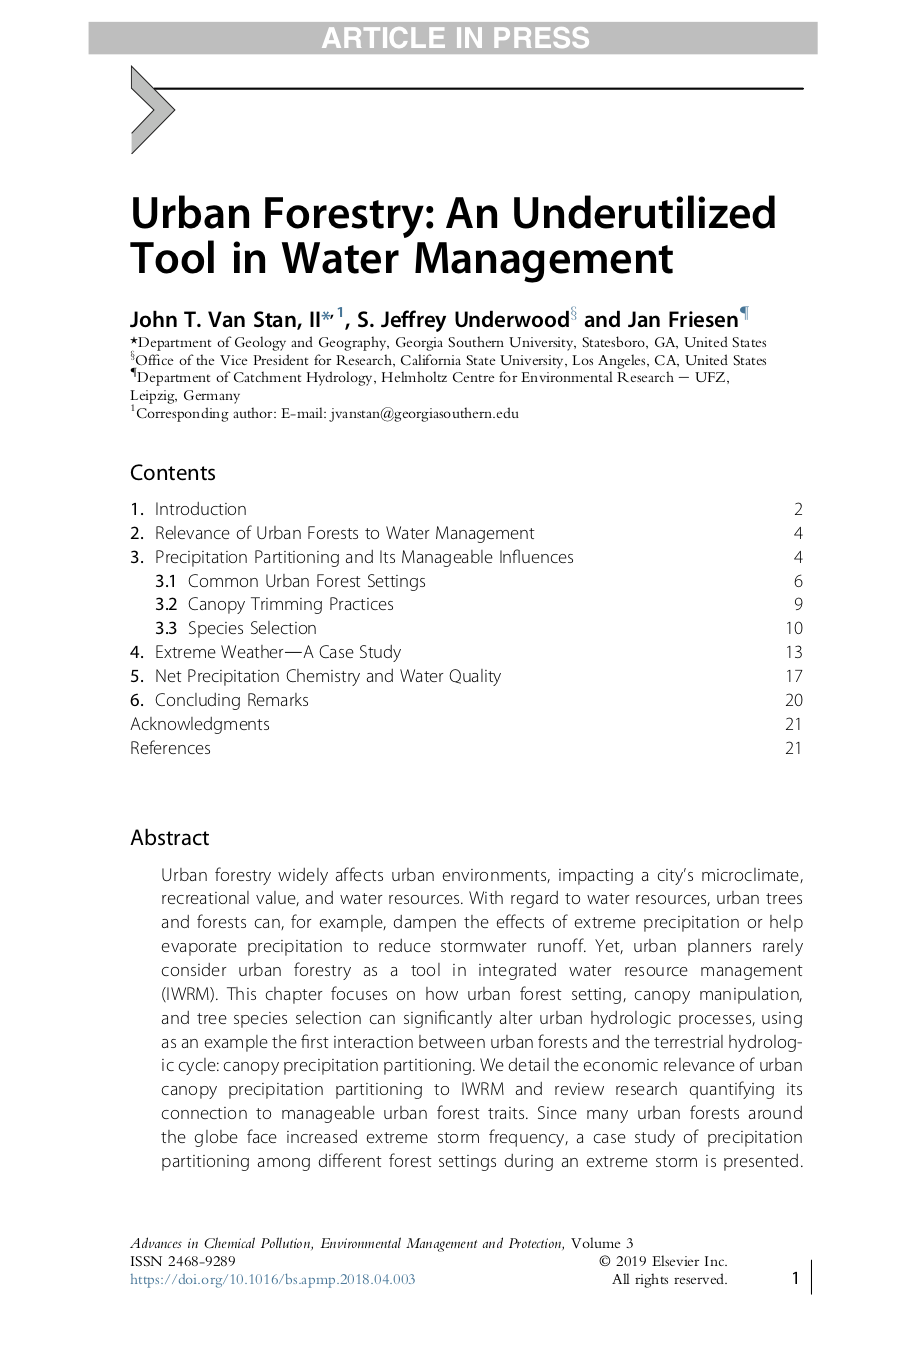 Wissenschaftlicher Artikel - Urban Forestry: An Underutilized Tool in Water Management